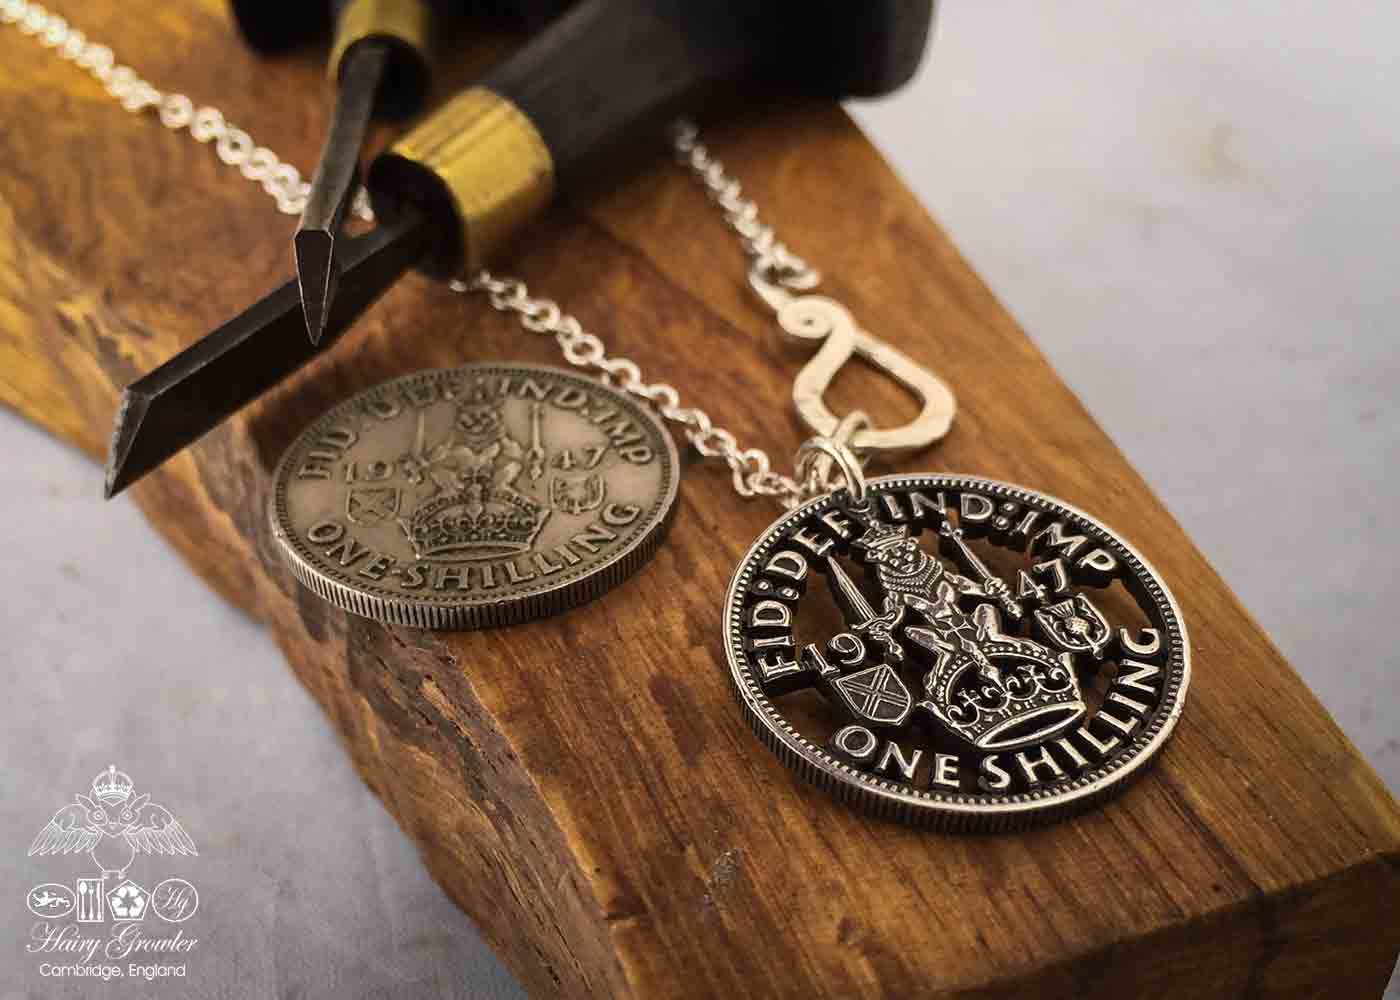 Handcrafted and recycled birthday shilling pendant